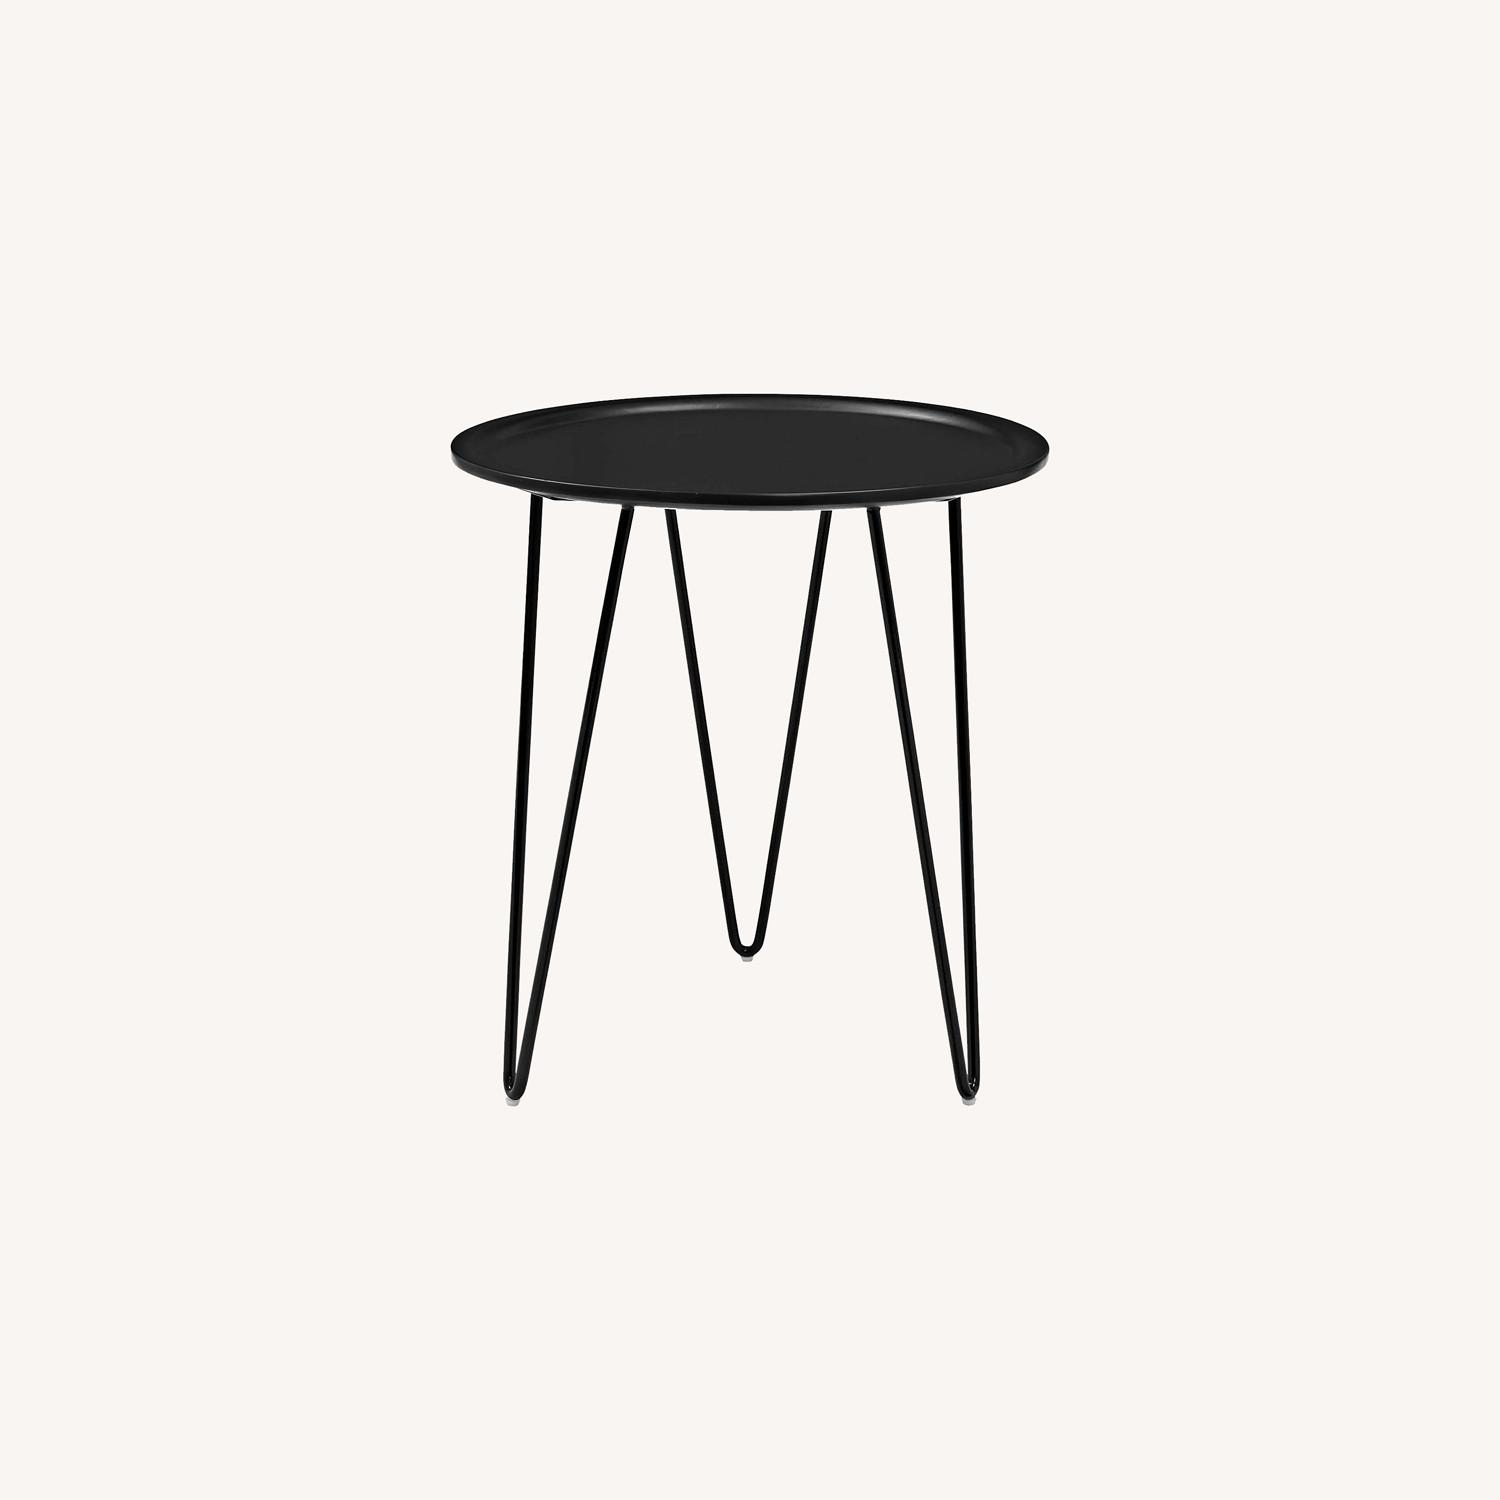 Mid-Century Style Side Table In Black Matte Finish - image-4